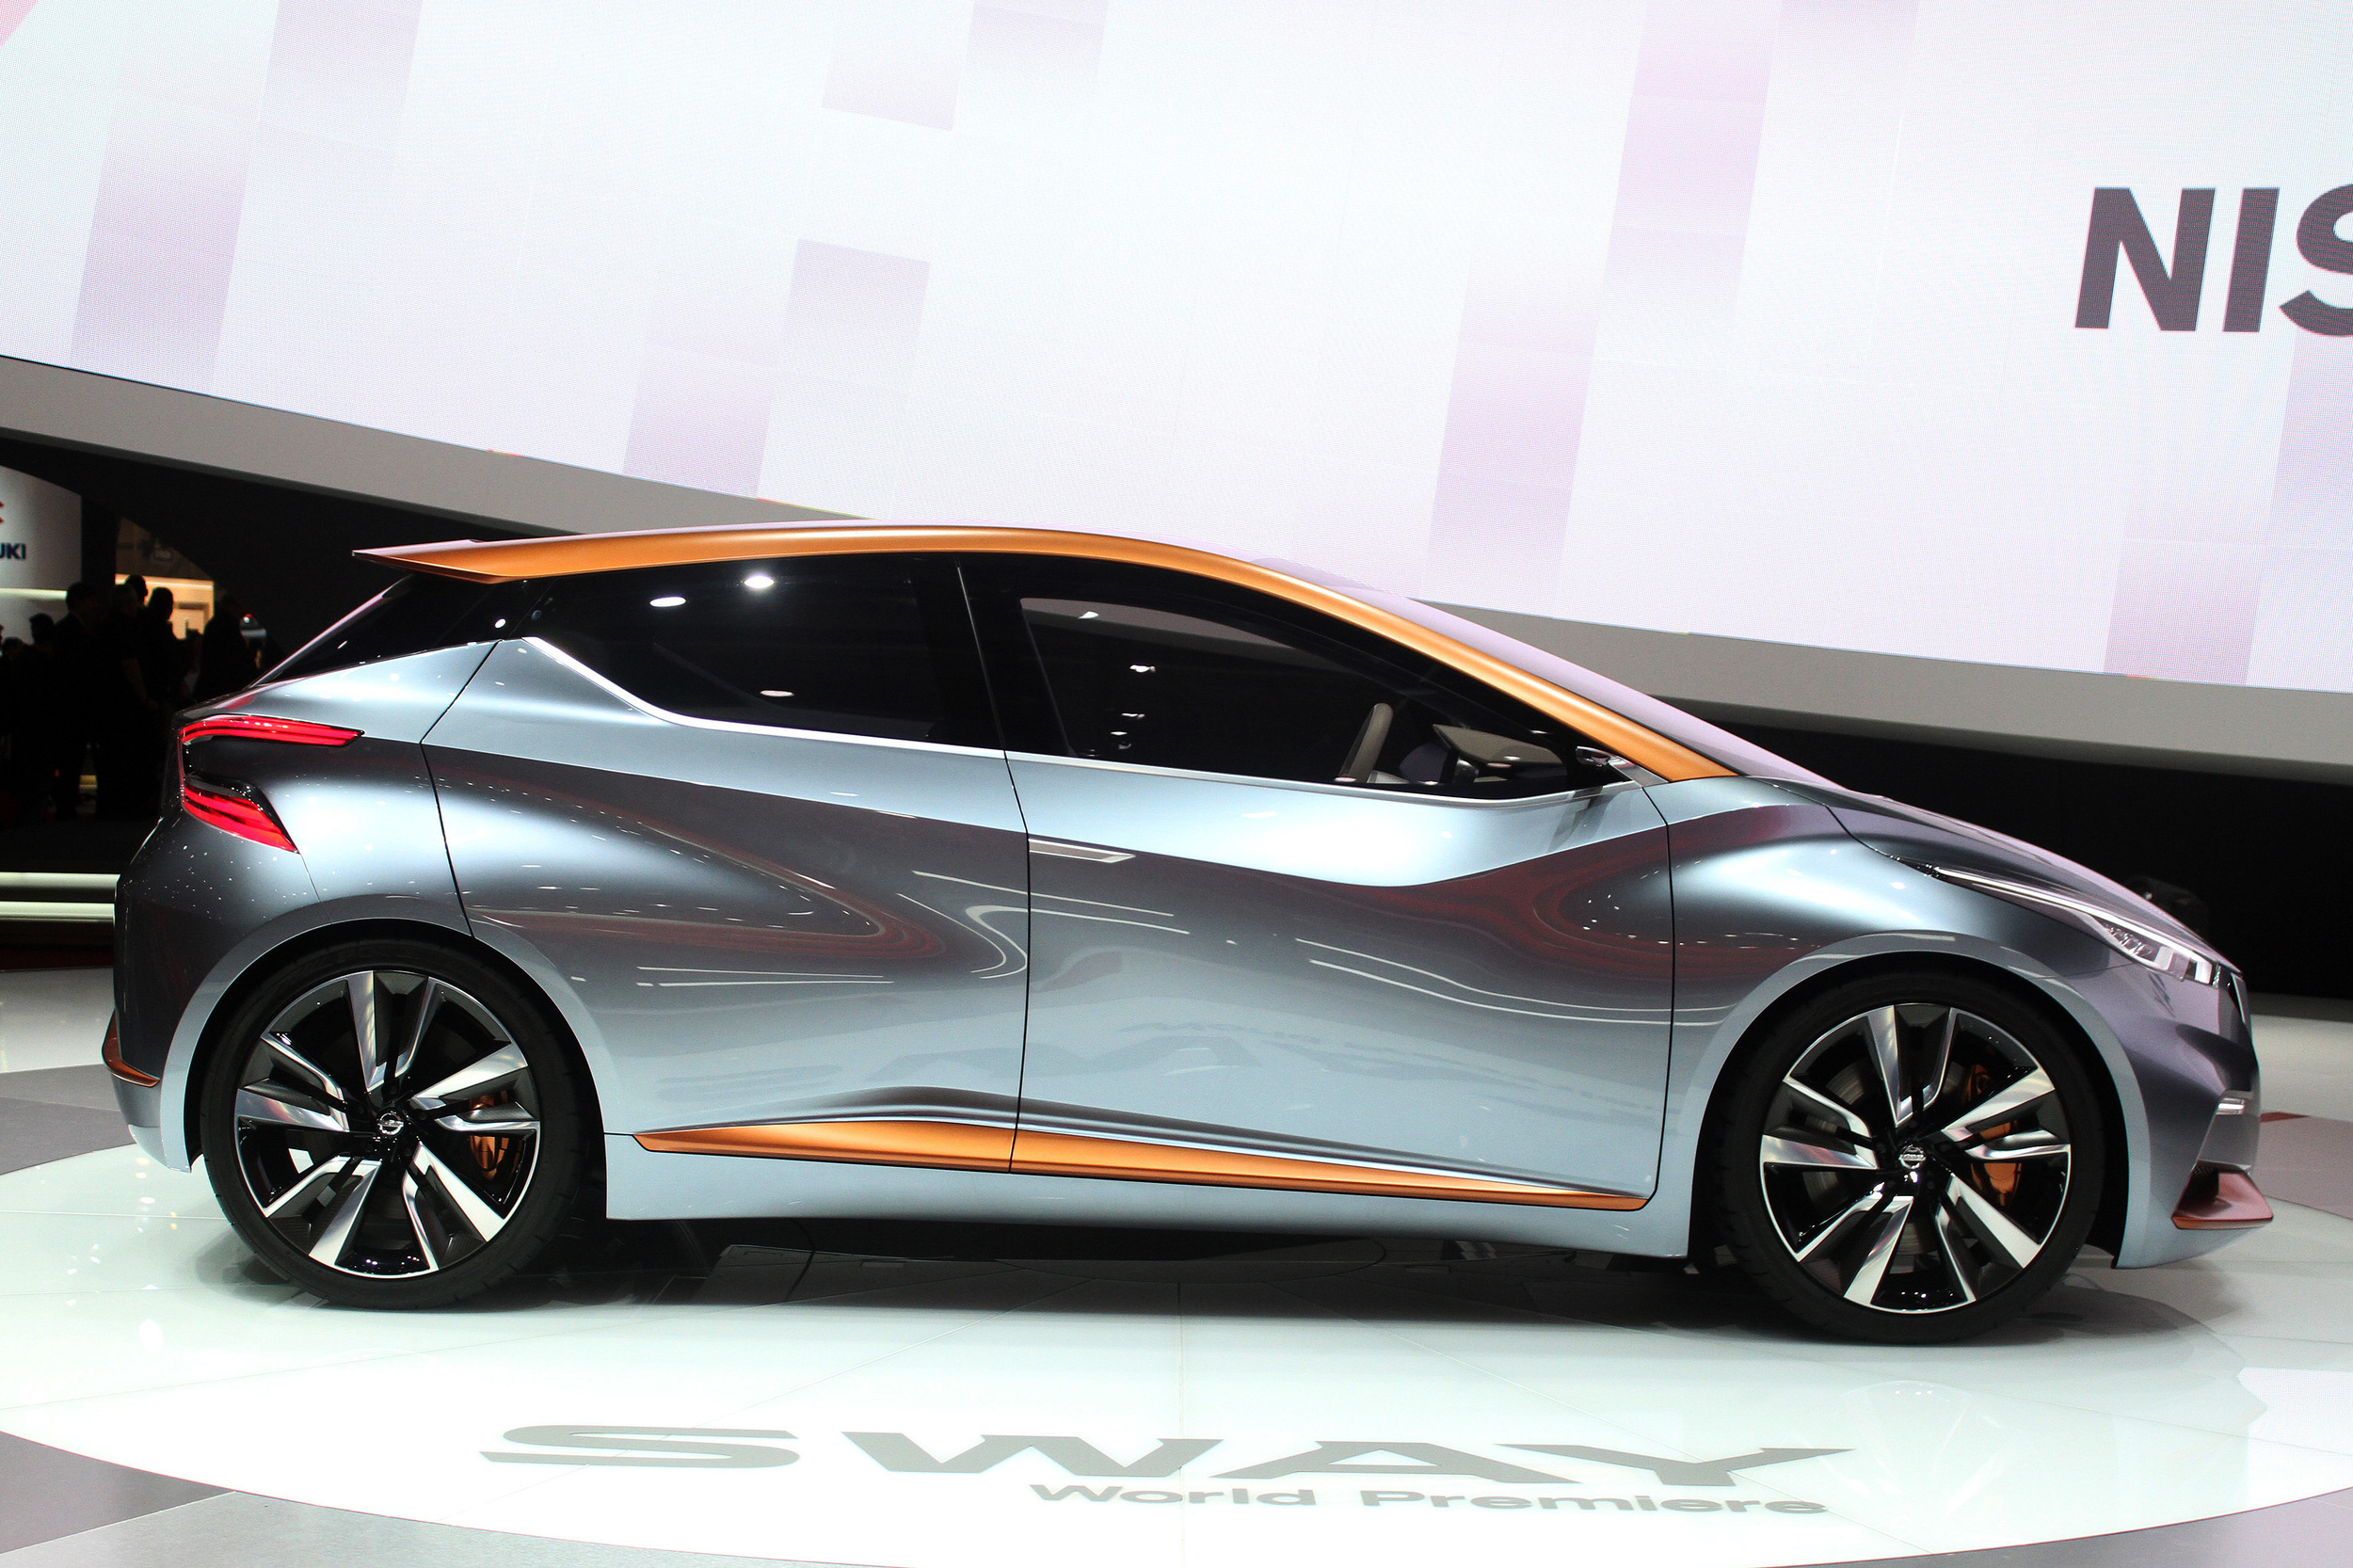 nissan-sway-concept-03-1-1